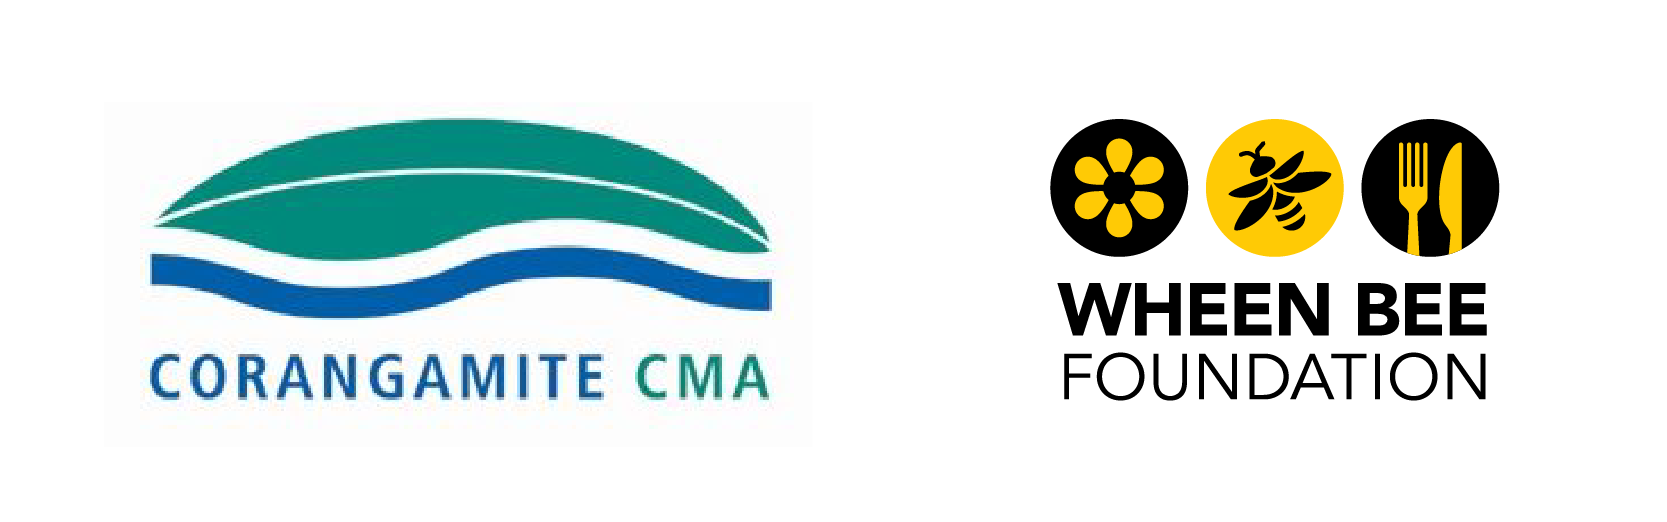 Wheen Bee Foundation and CCMA Poster